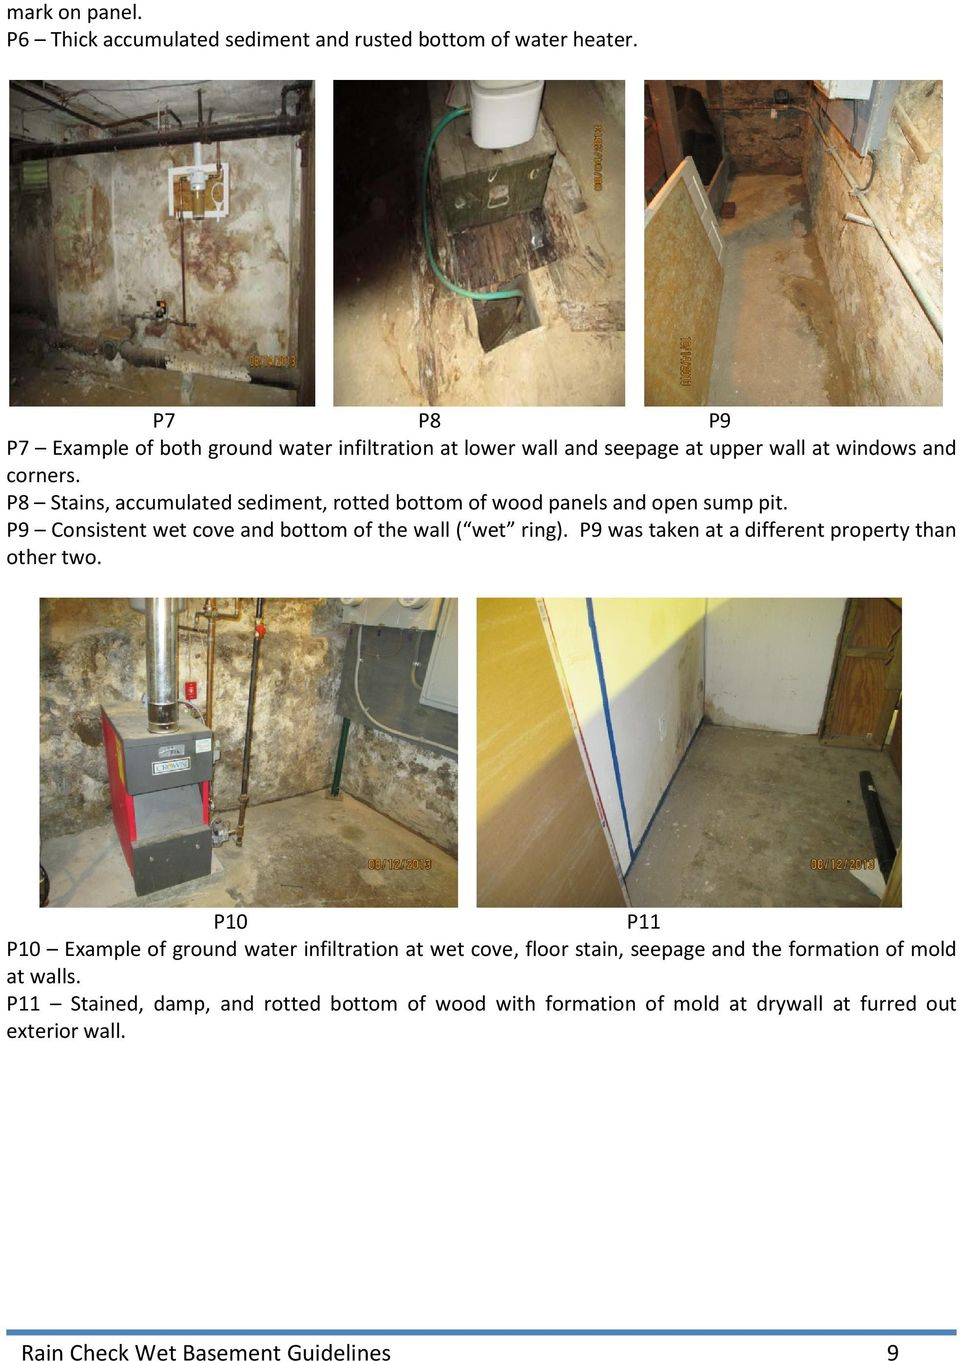 GUIDELINES FOR INSPECTING MOISTURE INFILTRATION IN BASEMENTS & CRAWL